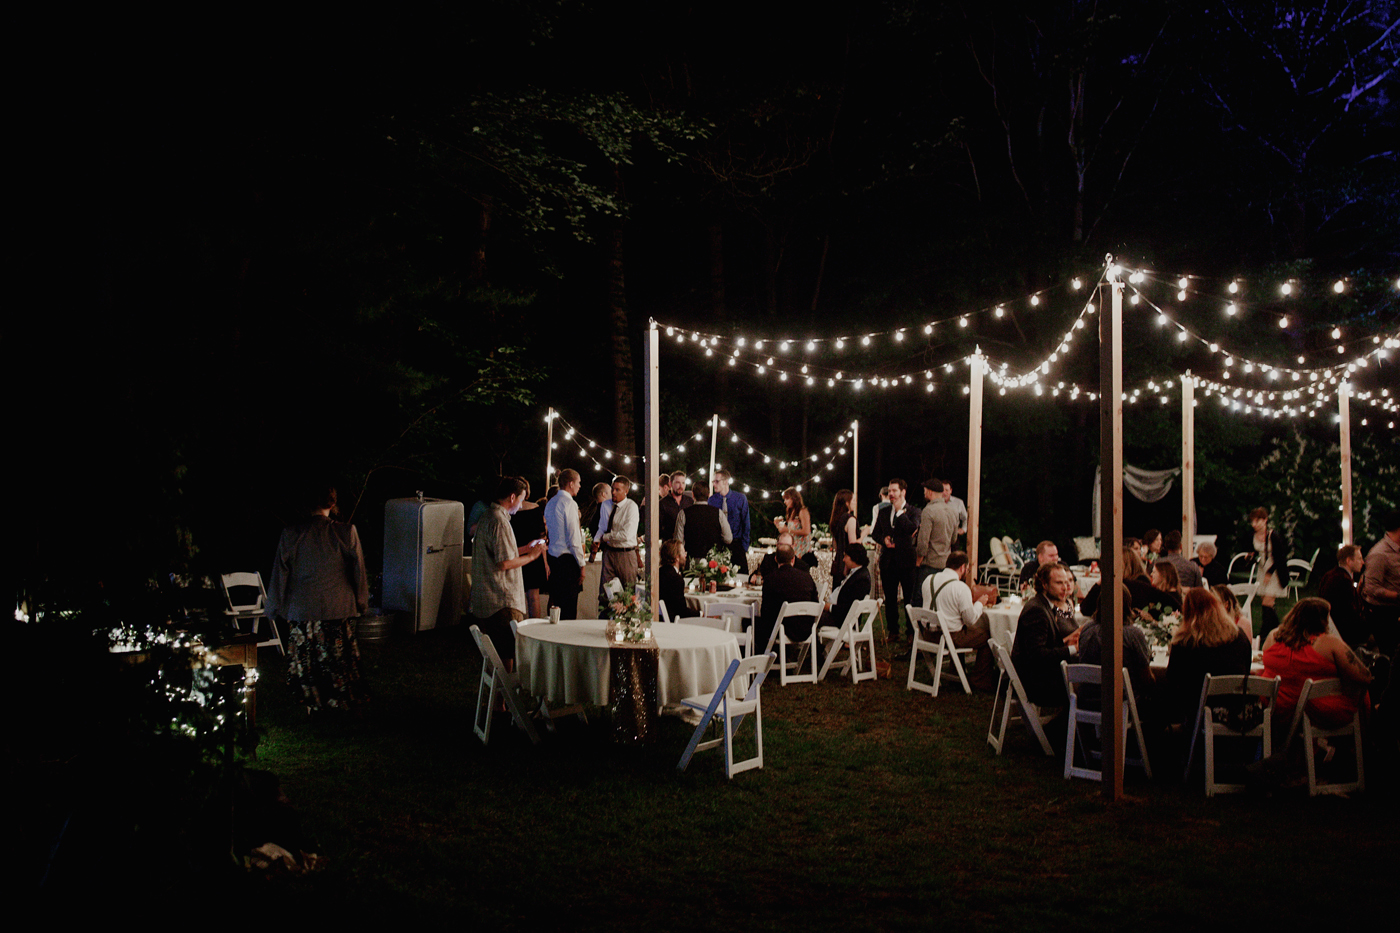 amandavanvels_backyardwedding_0851.jpg